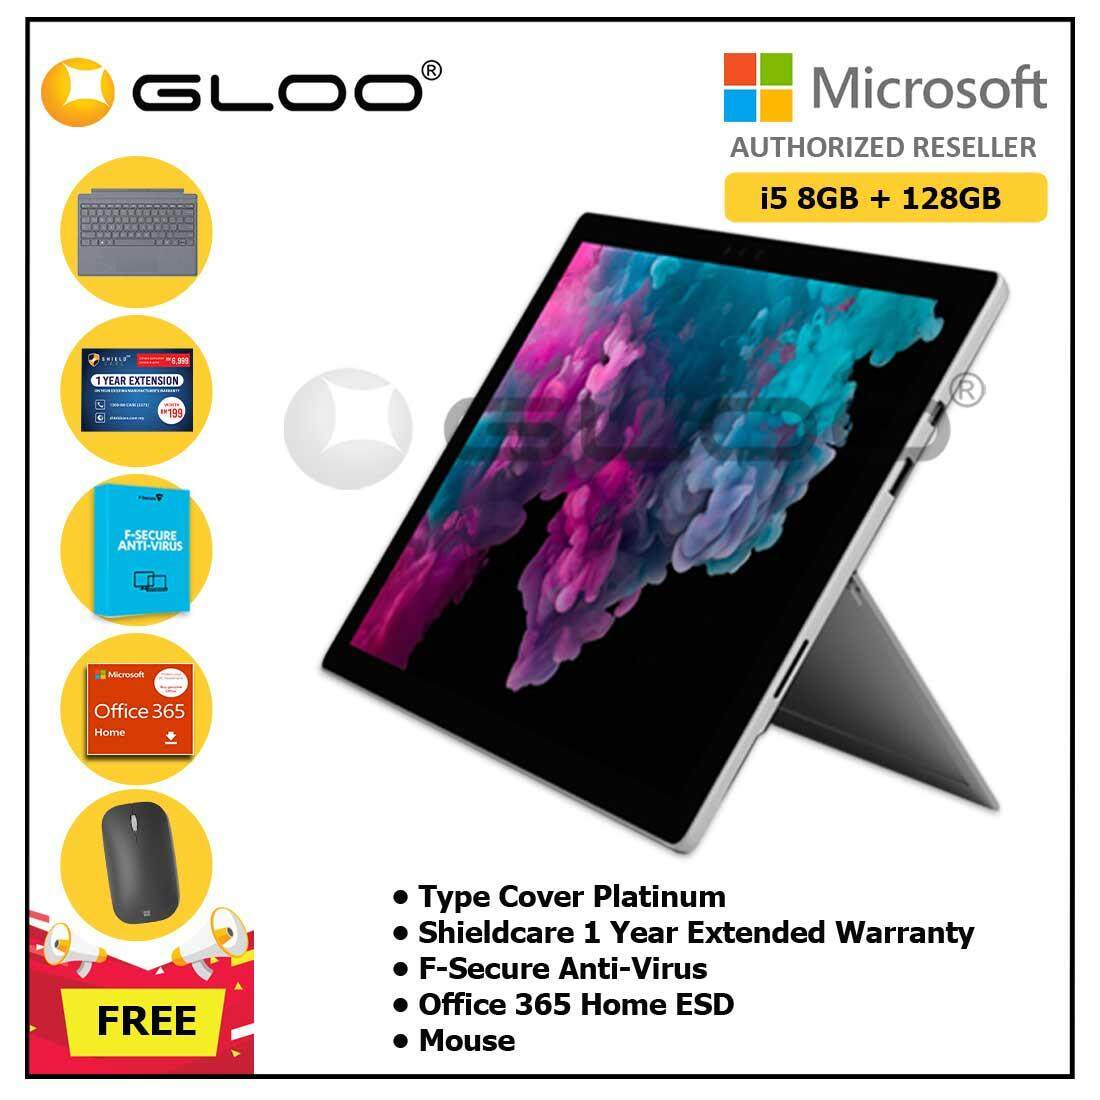 Microsoft Surface Pro 6 Core i5/8GB RAM -128GB + Type Cover Platinum + Office 365 Home ESD +  F-Secure End Point Protection + Shieldcare 1 Year Extended Warranty + Mouse